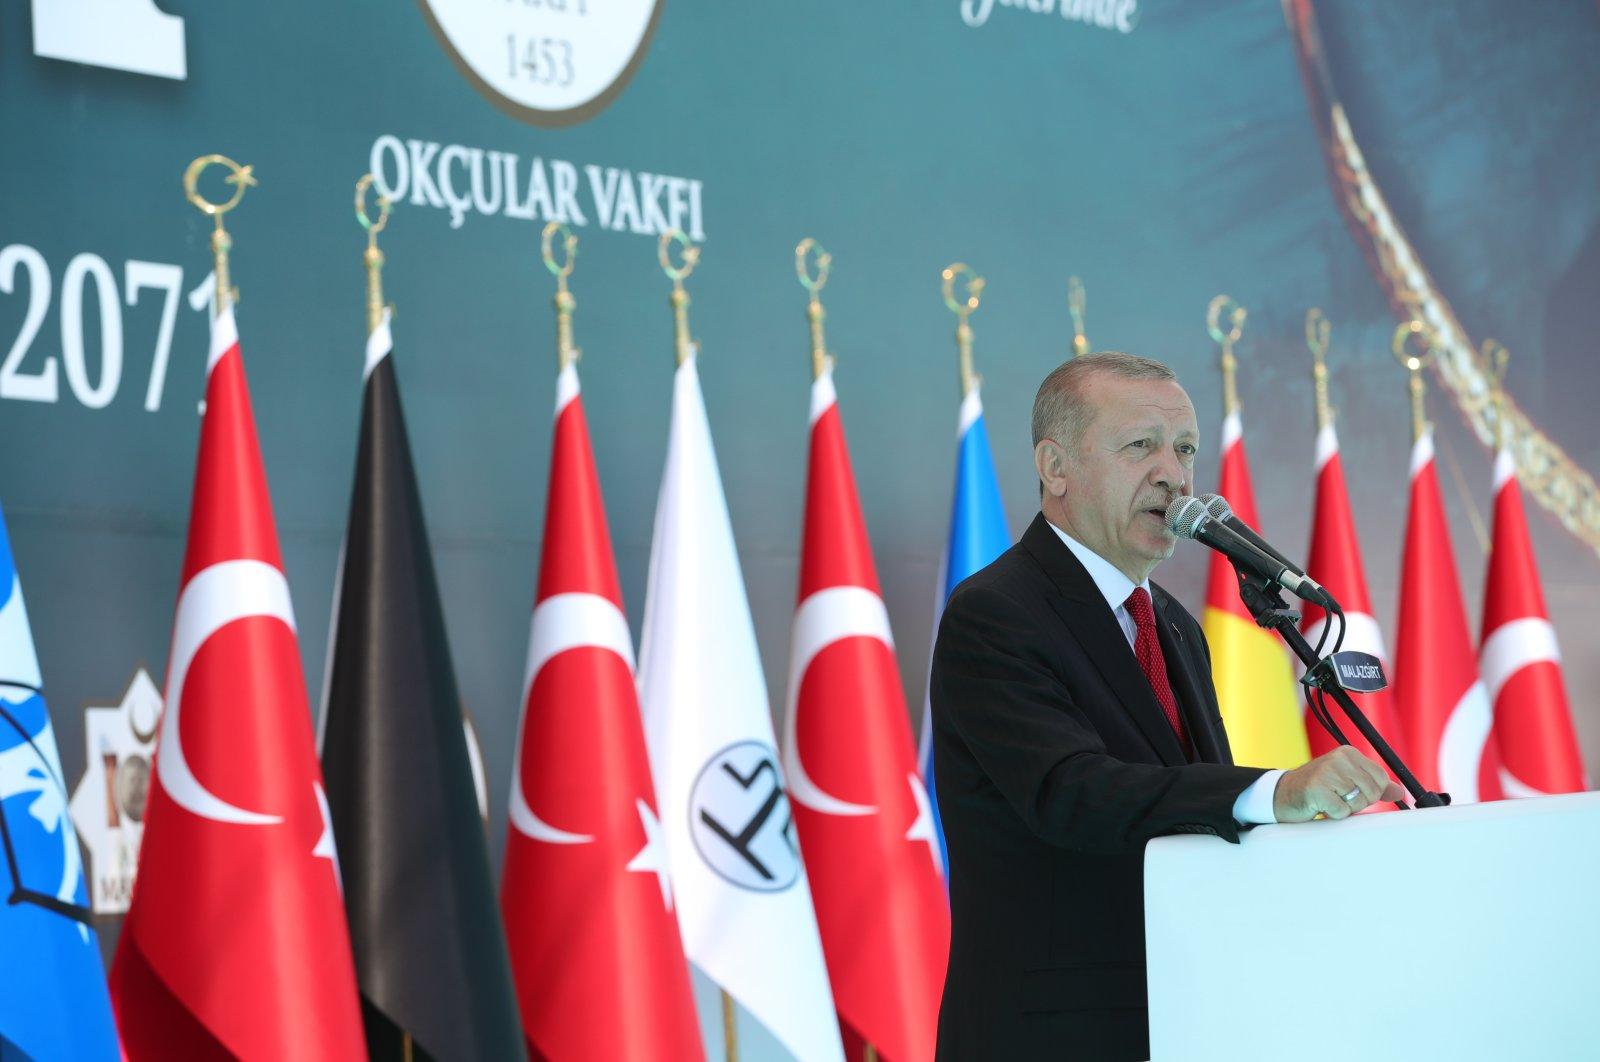 President Recep Tayyip Erdoğan speaks at the 949th anniversary of the Victory of Manzikert in the Ahlat district of eastern Bitlis province, Turkey, Aug. 26, 2020. (AA Photo)